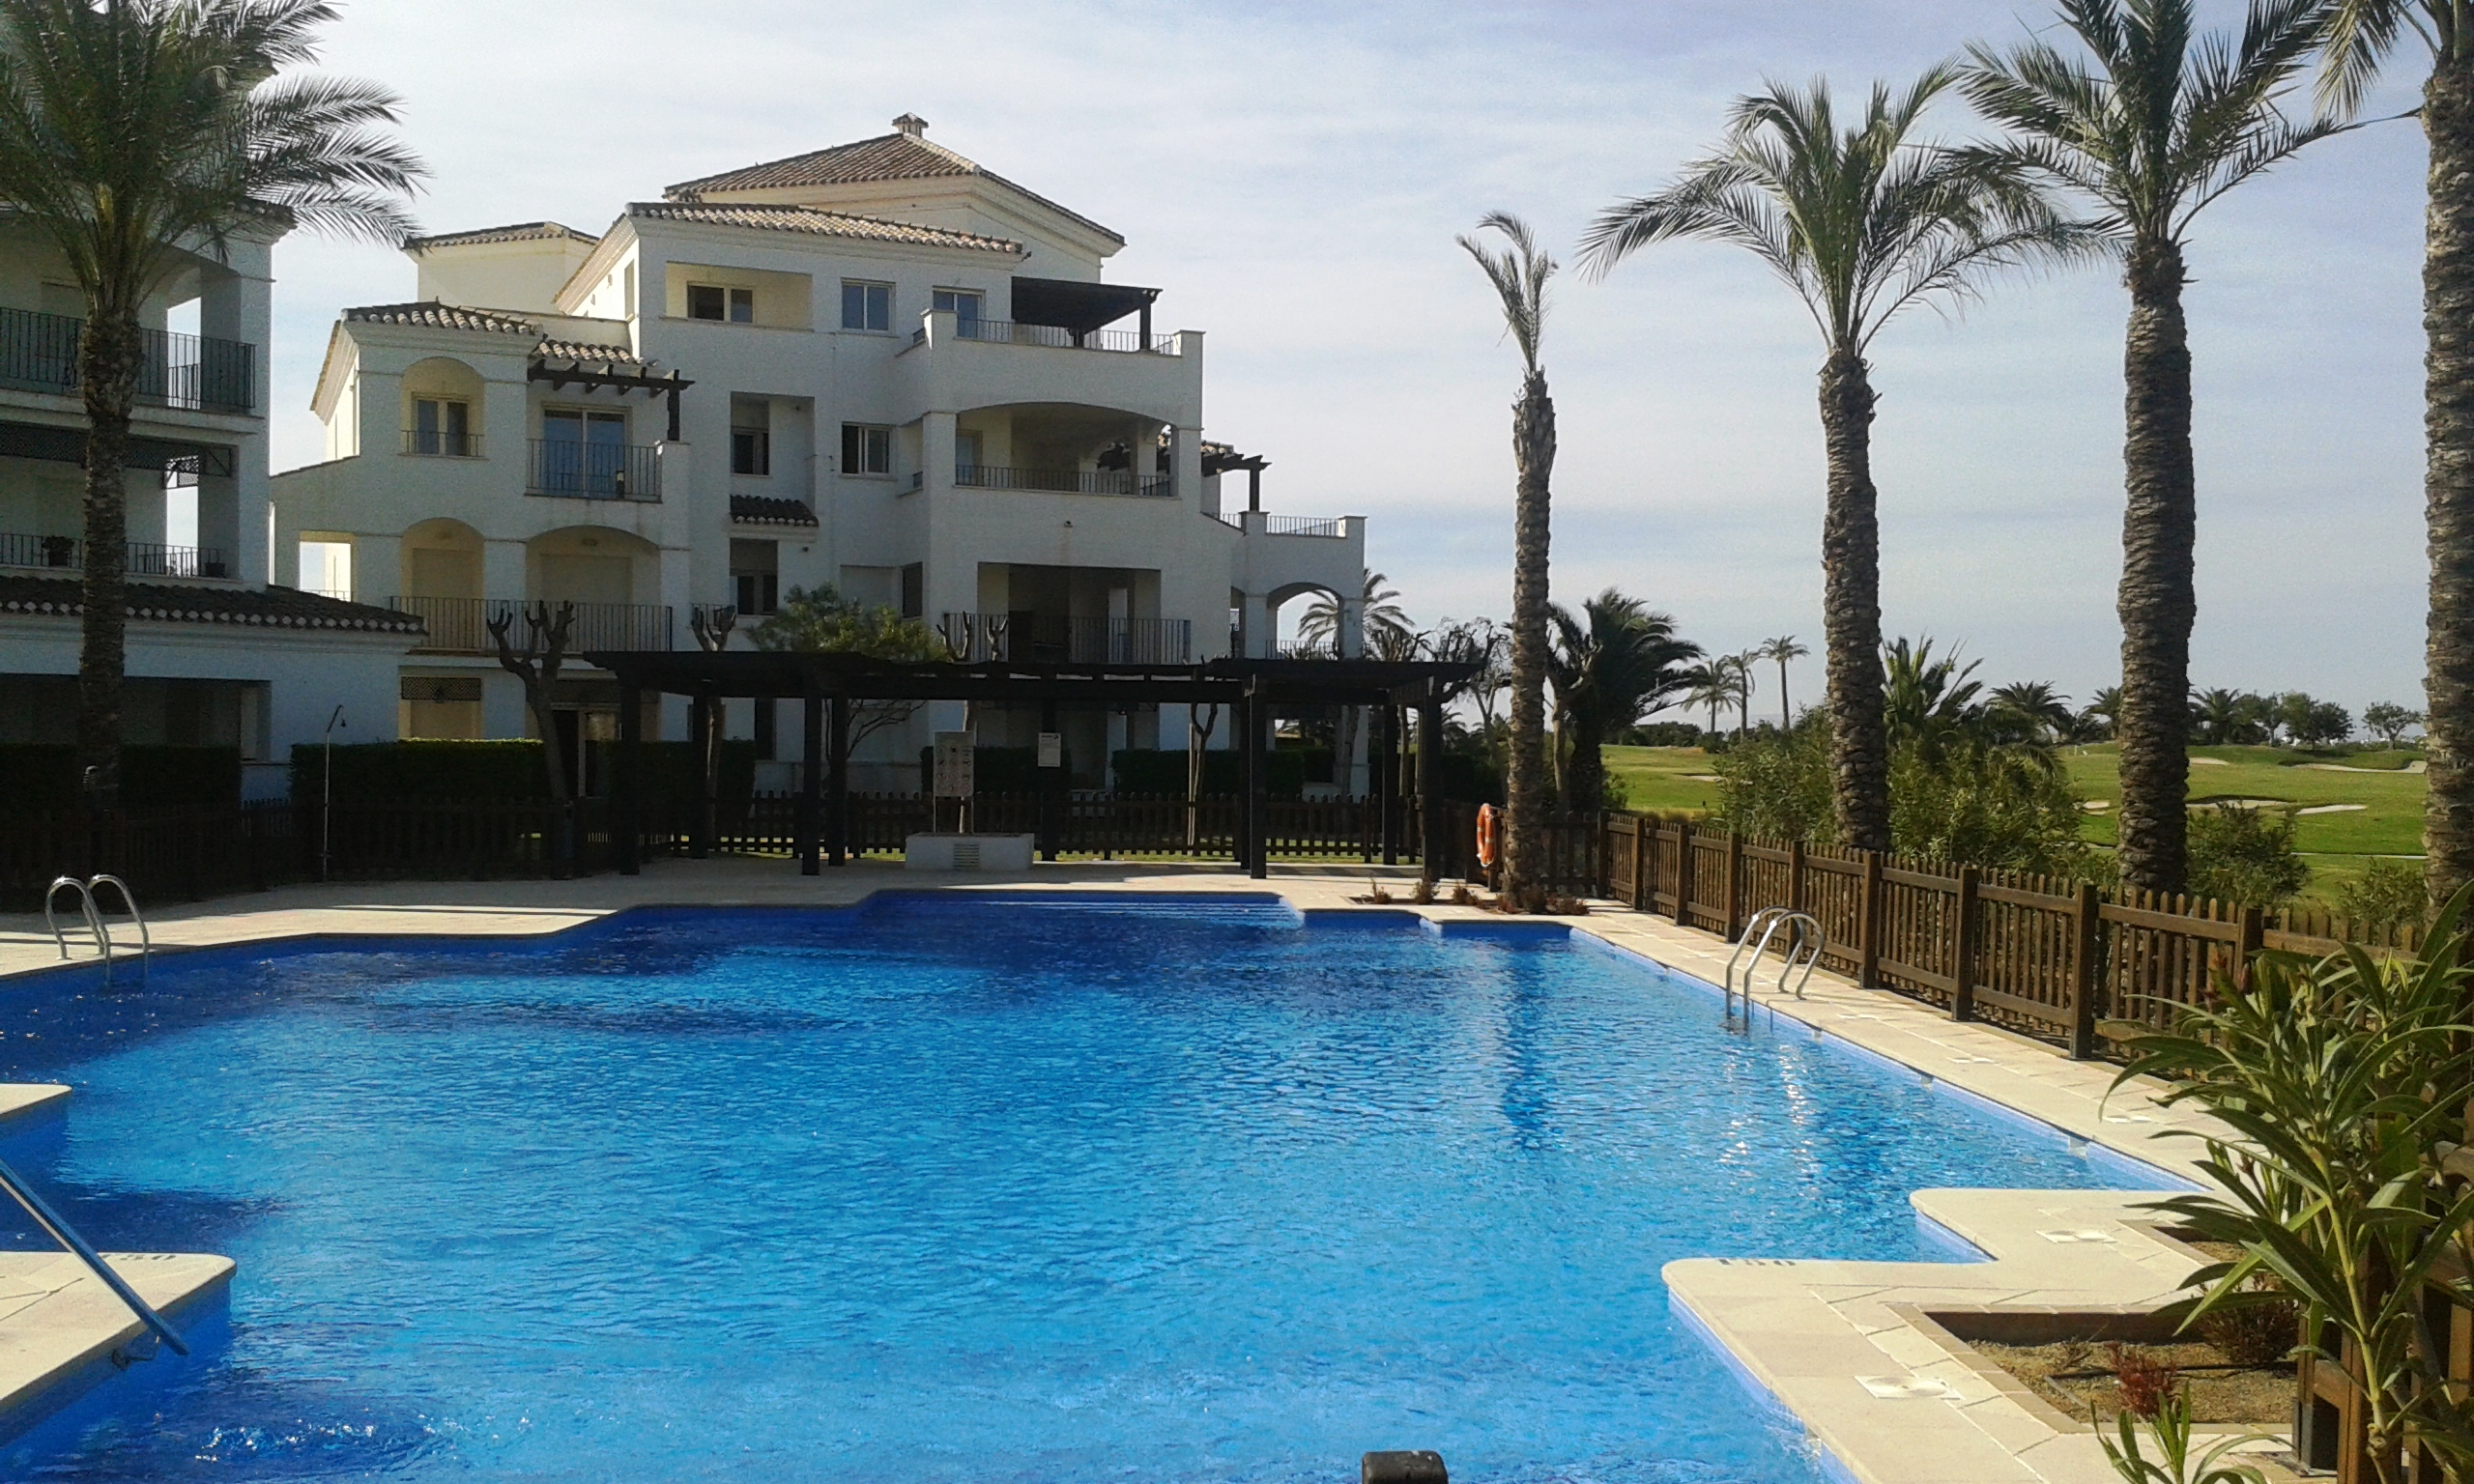 La Torre holiday resort